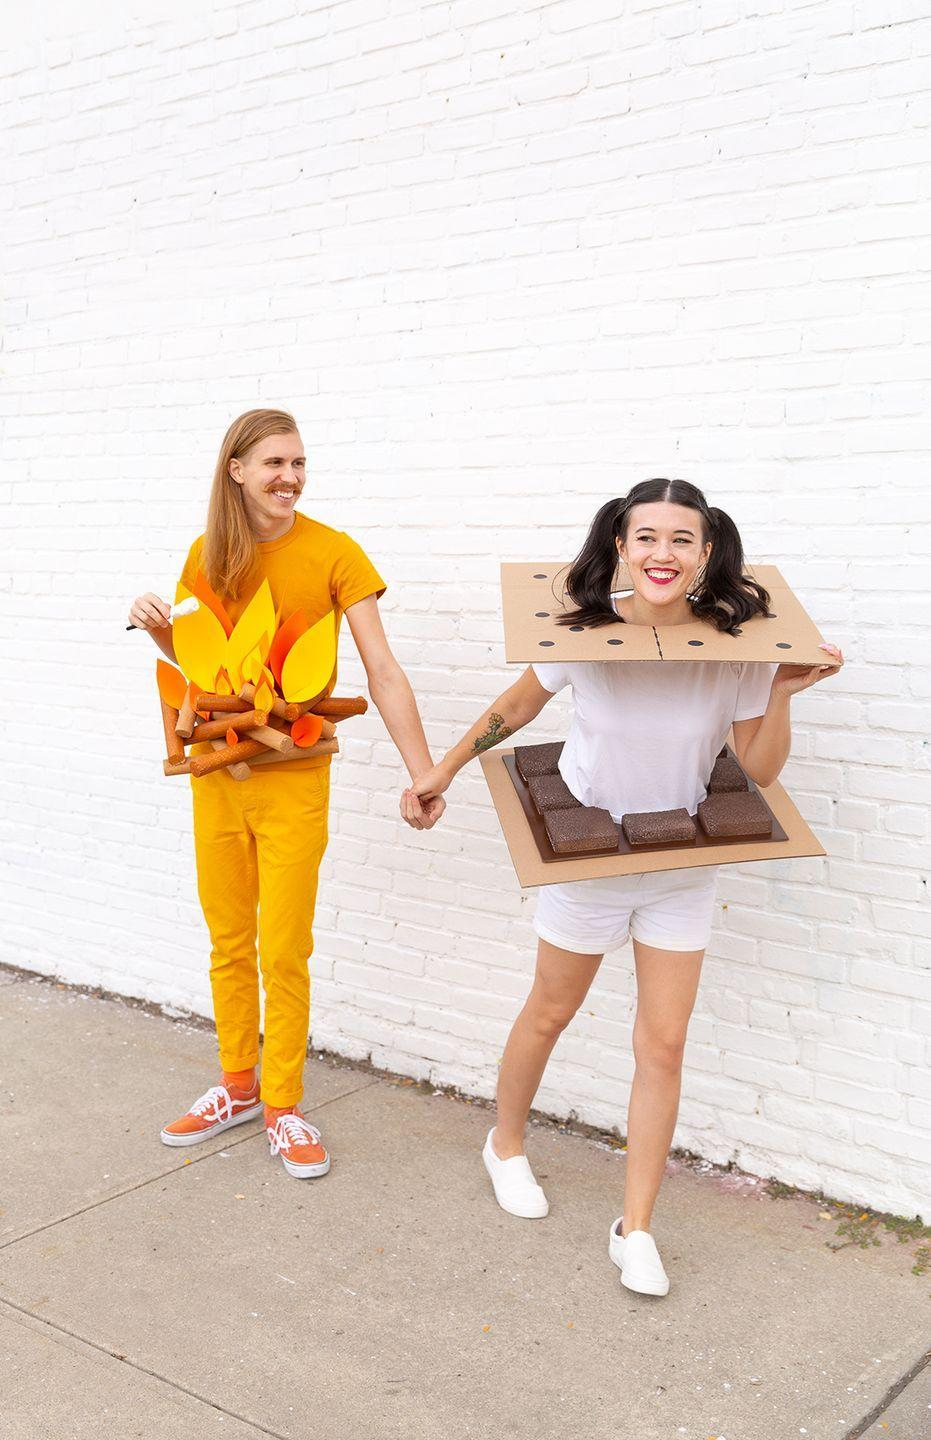 """<p>Good news: Creating this partner costume is surprisingly easy. The hardest part? Accepting the fact that the S'mores costume isn't edible. </p><p><em><a href=""""http://www.awwsam.com/2018/10/diy-camp-couples-costumes.html"""" rel=""""nofollow noopener"""" target=""""_blank"""" data-ylk=""""slk:Get the tutorial at Aww Sam >>"""" class=""""link rapid-noclick-resp"""">Get the tutorial at Aww Sam >></a><br></em></p>"""